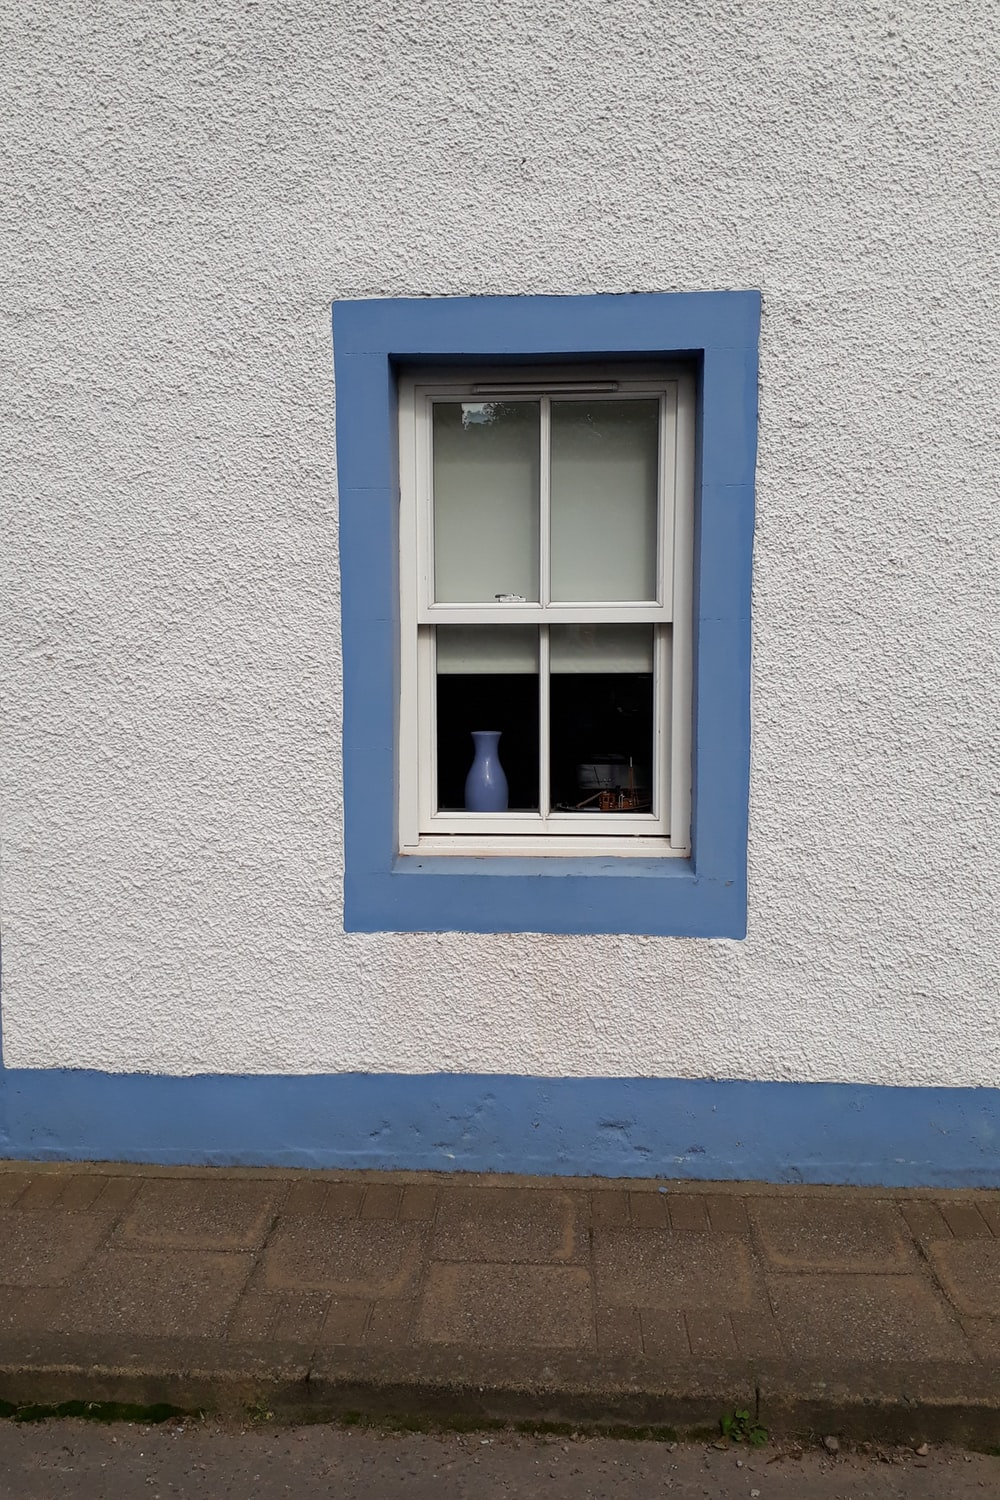 blue wooden window frame on white concrete wall